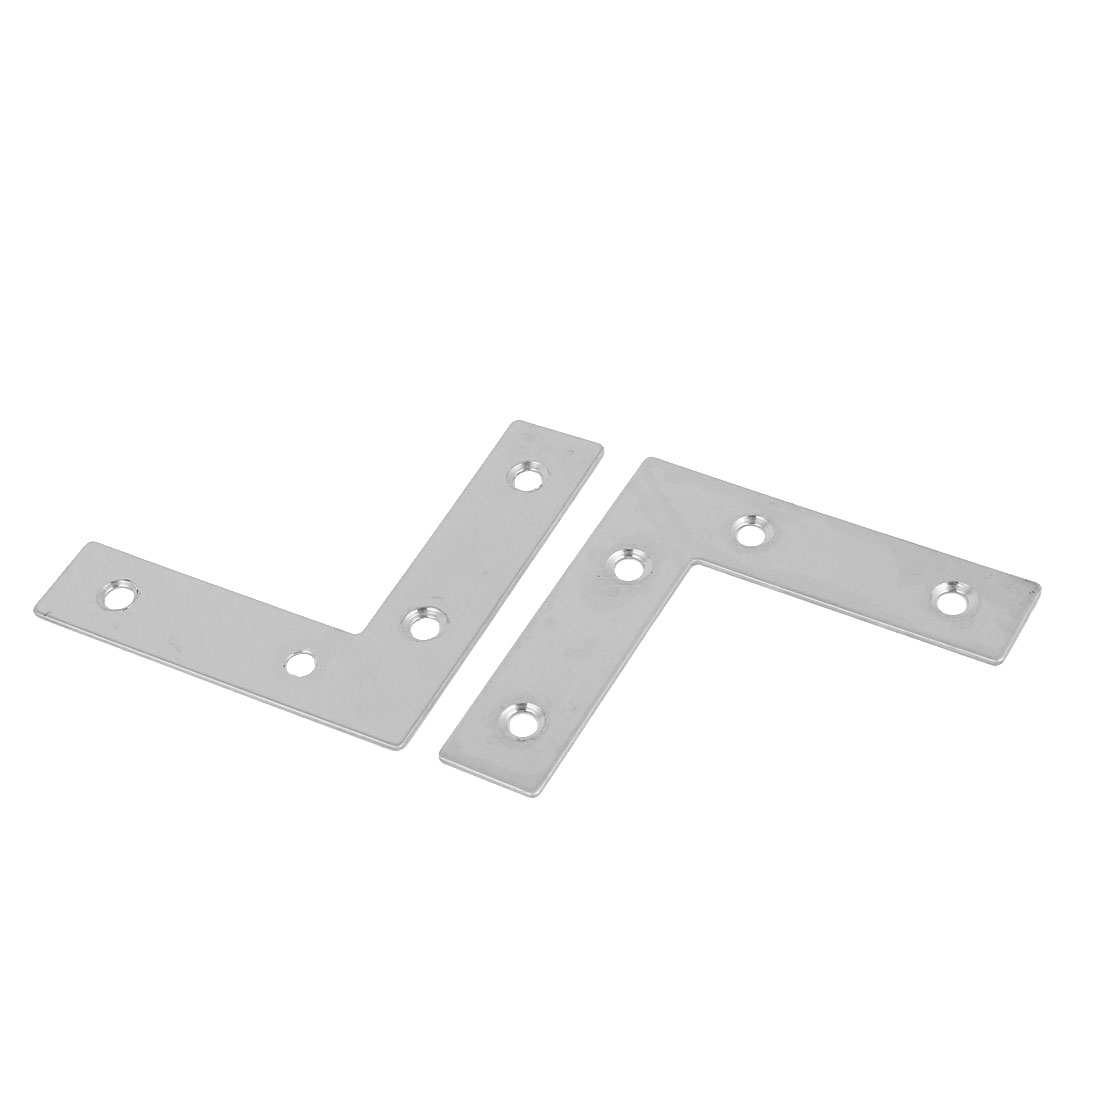 60mmx60mm L Shaped Stainless Steel Angle Bracket Corner Brace Joint 2 Pcs